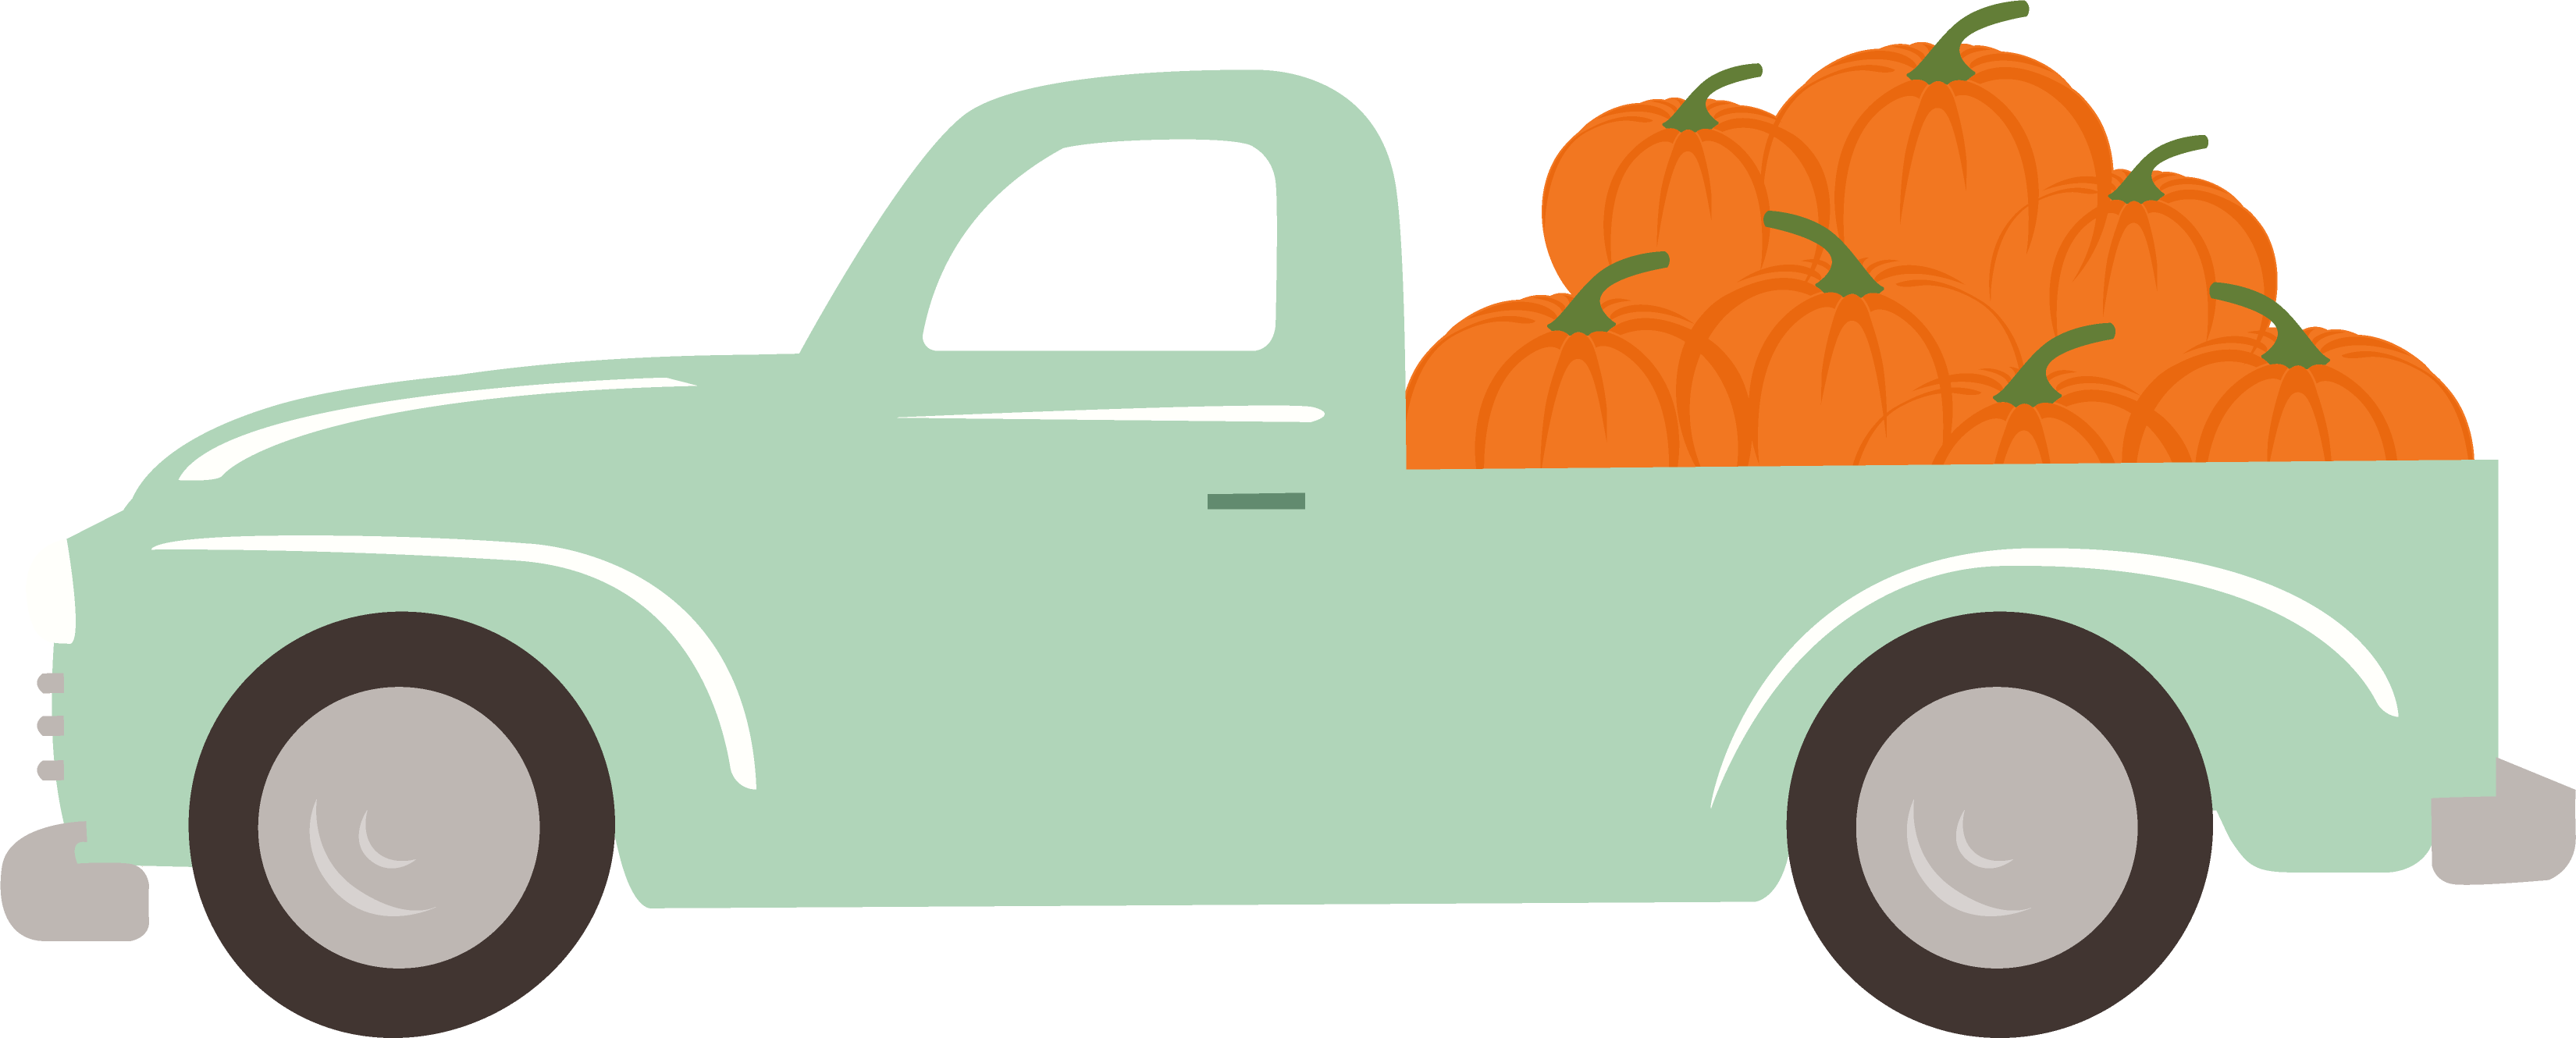 Fall Market Truck SVG Cut File